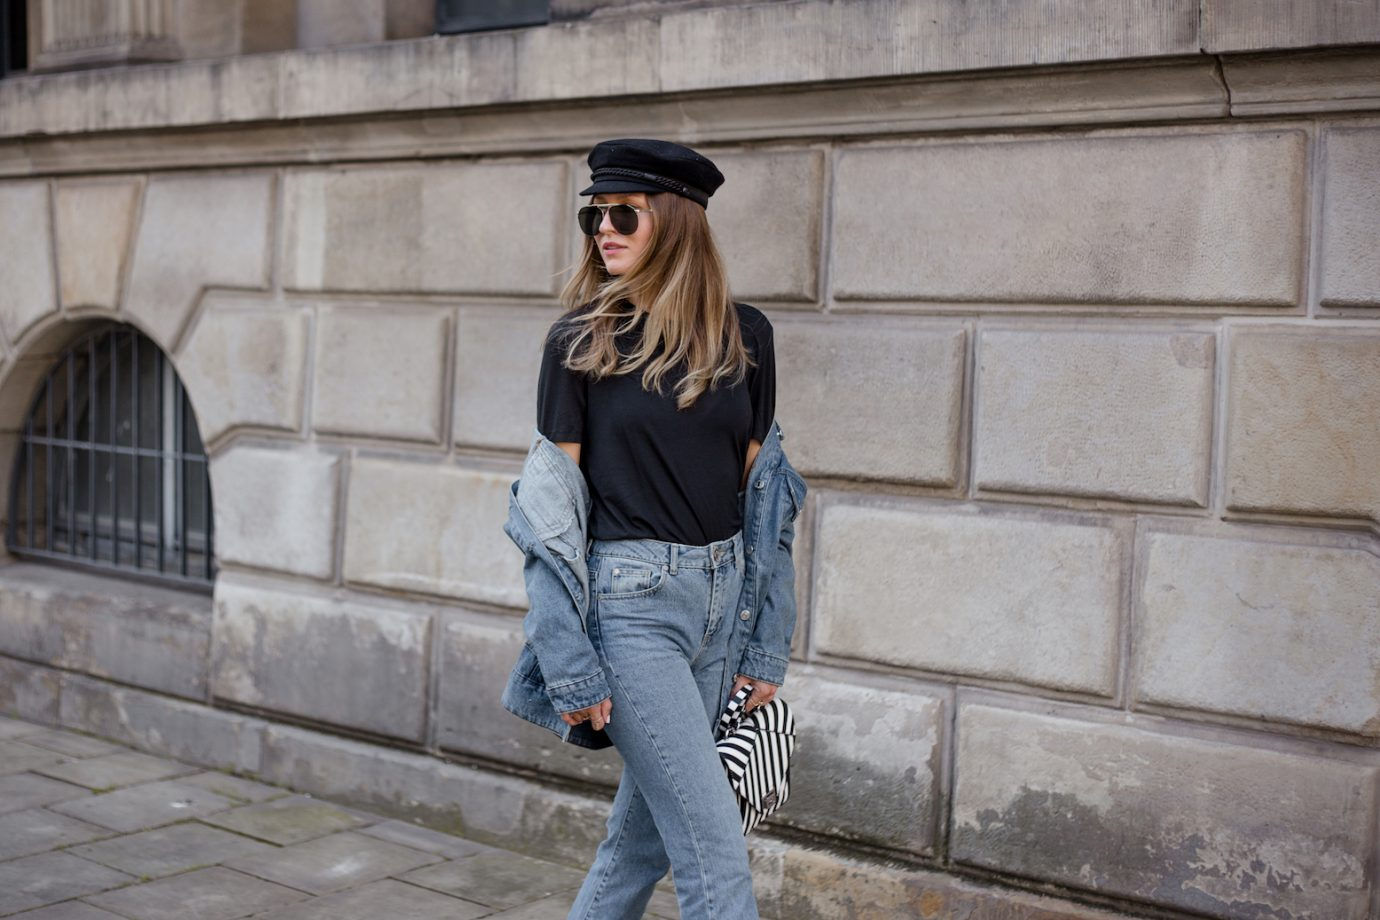 FIRST FALL LOOK WITH DENIM